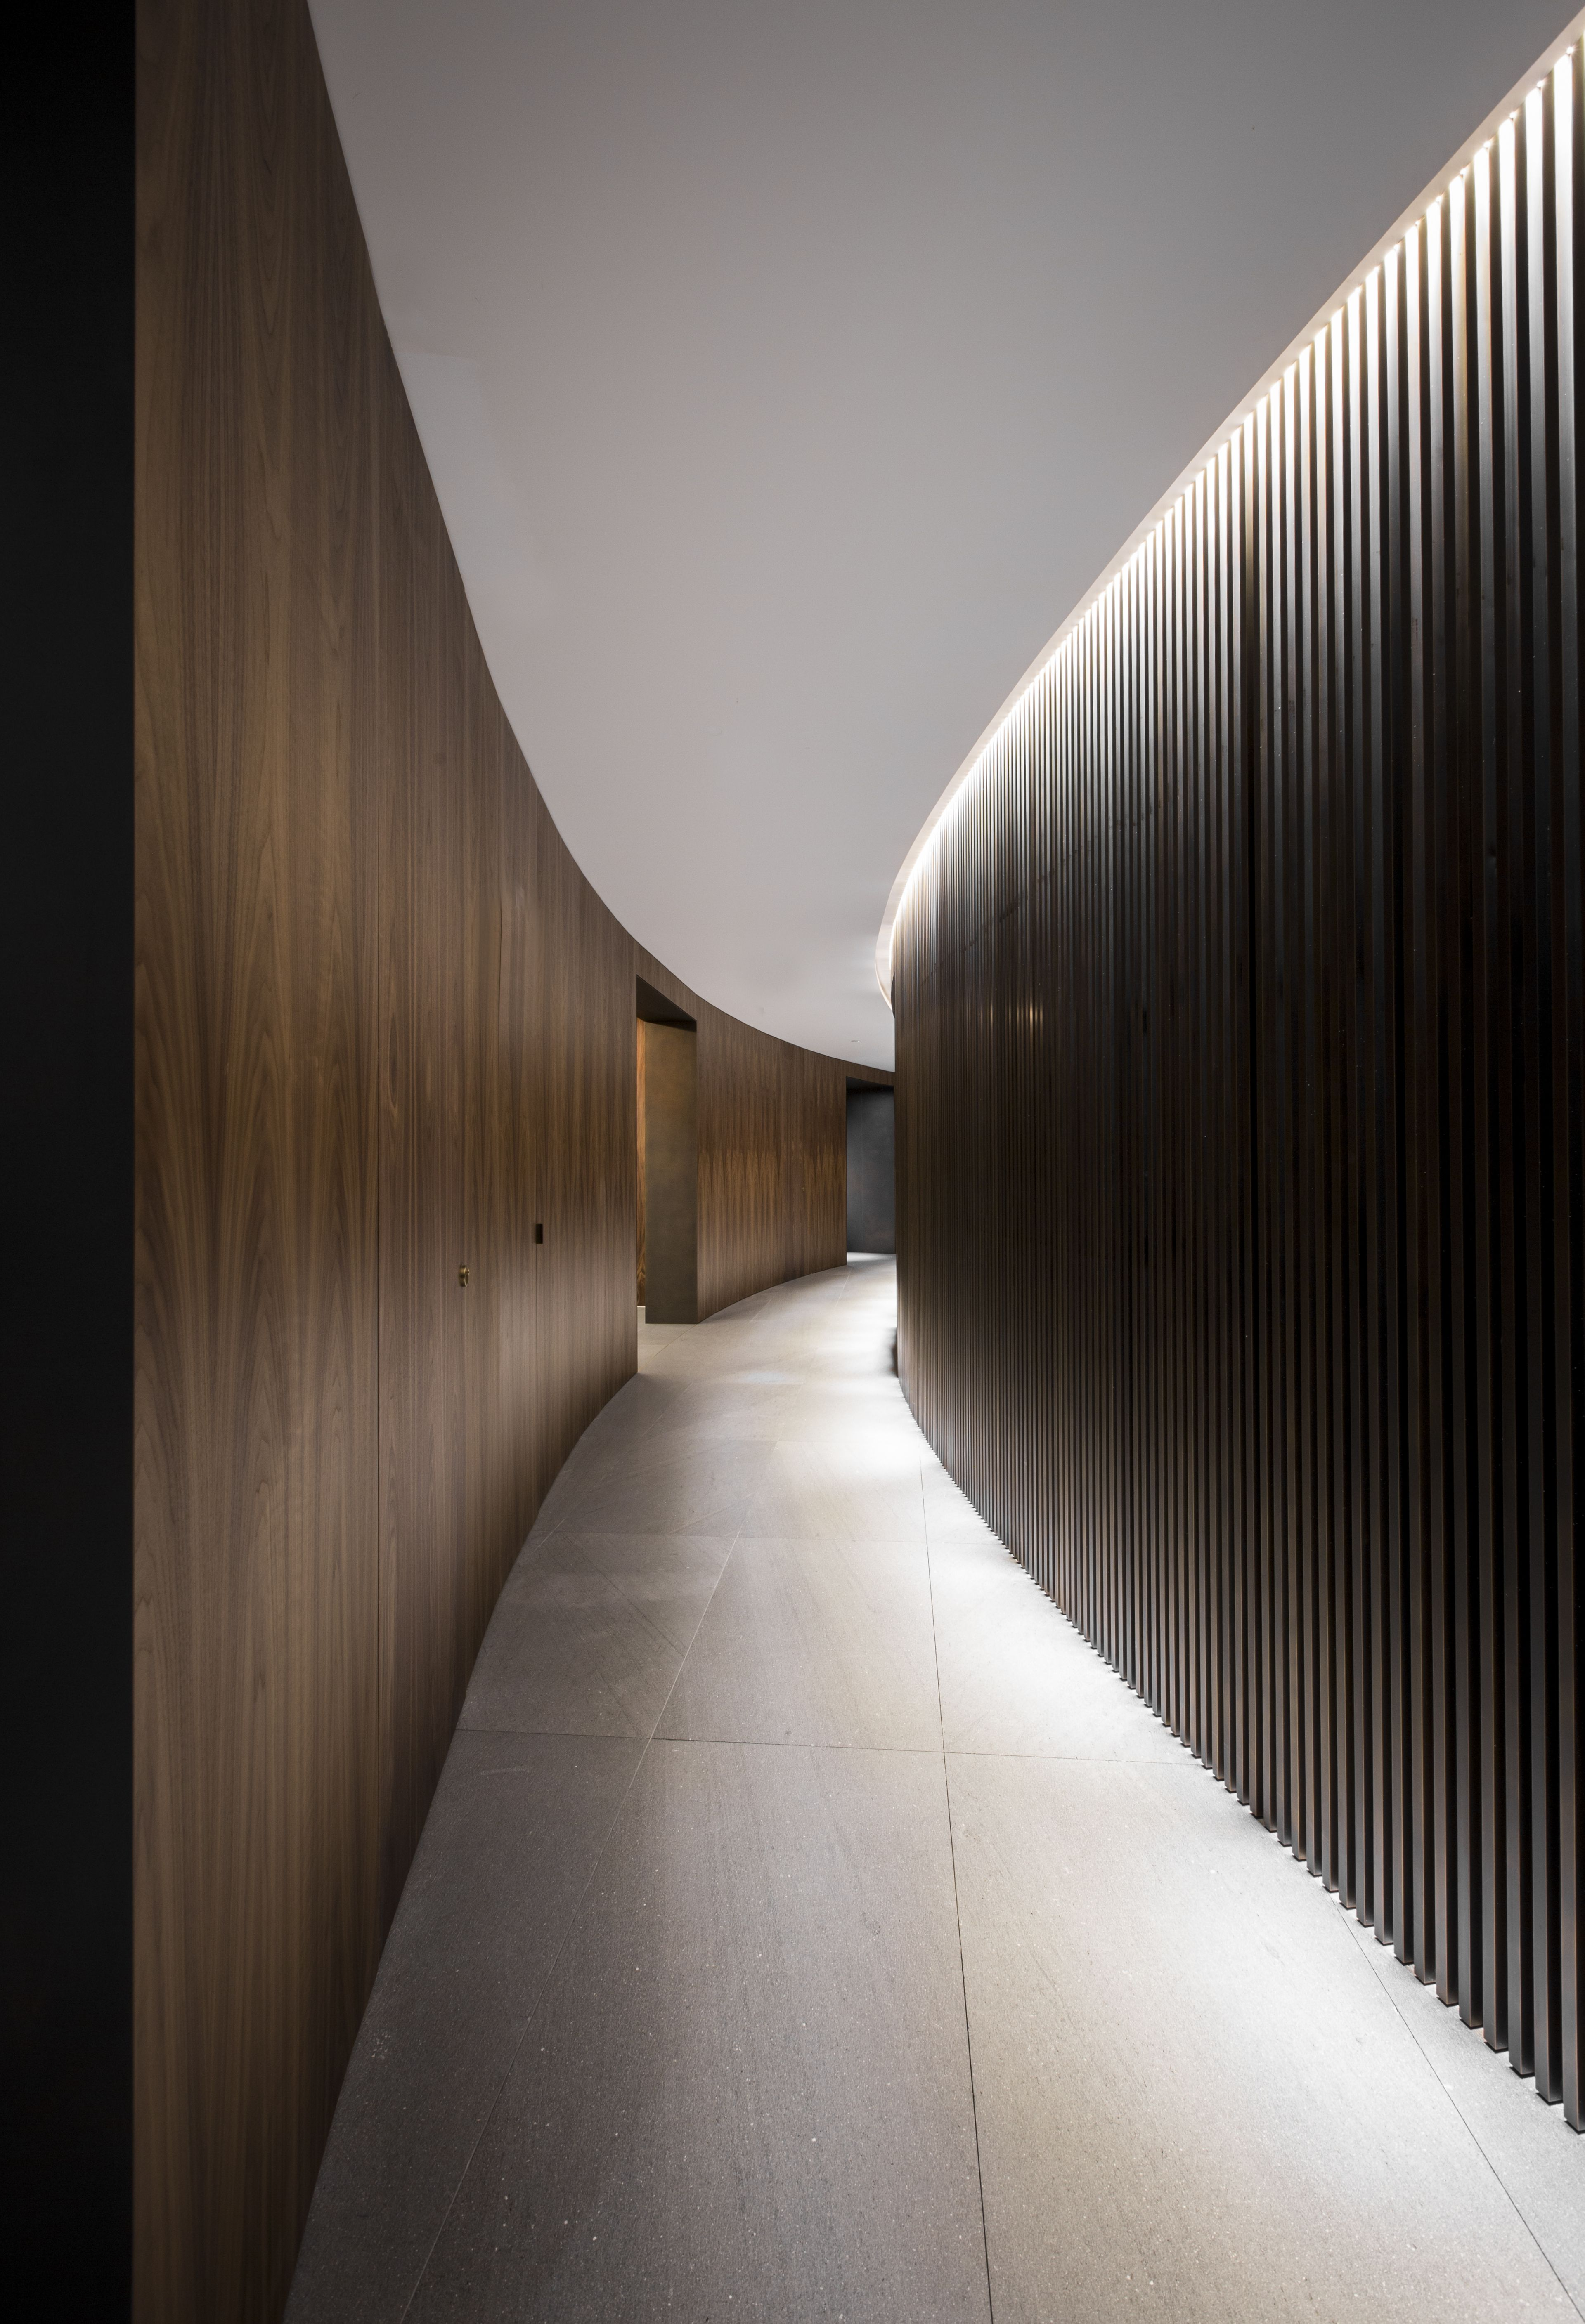 Hotel Room Wall: Curved Corridor With Wood-panelled Walls, White Ceiling